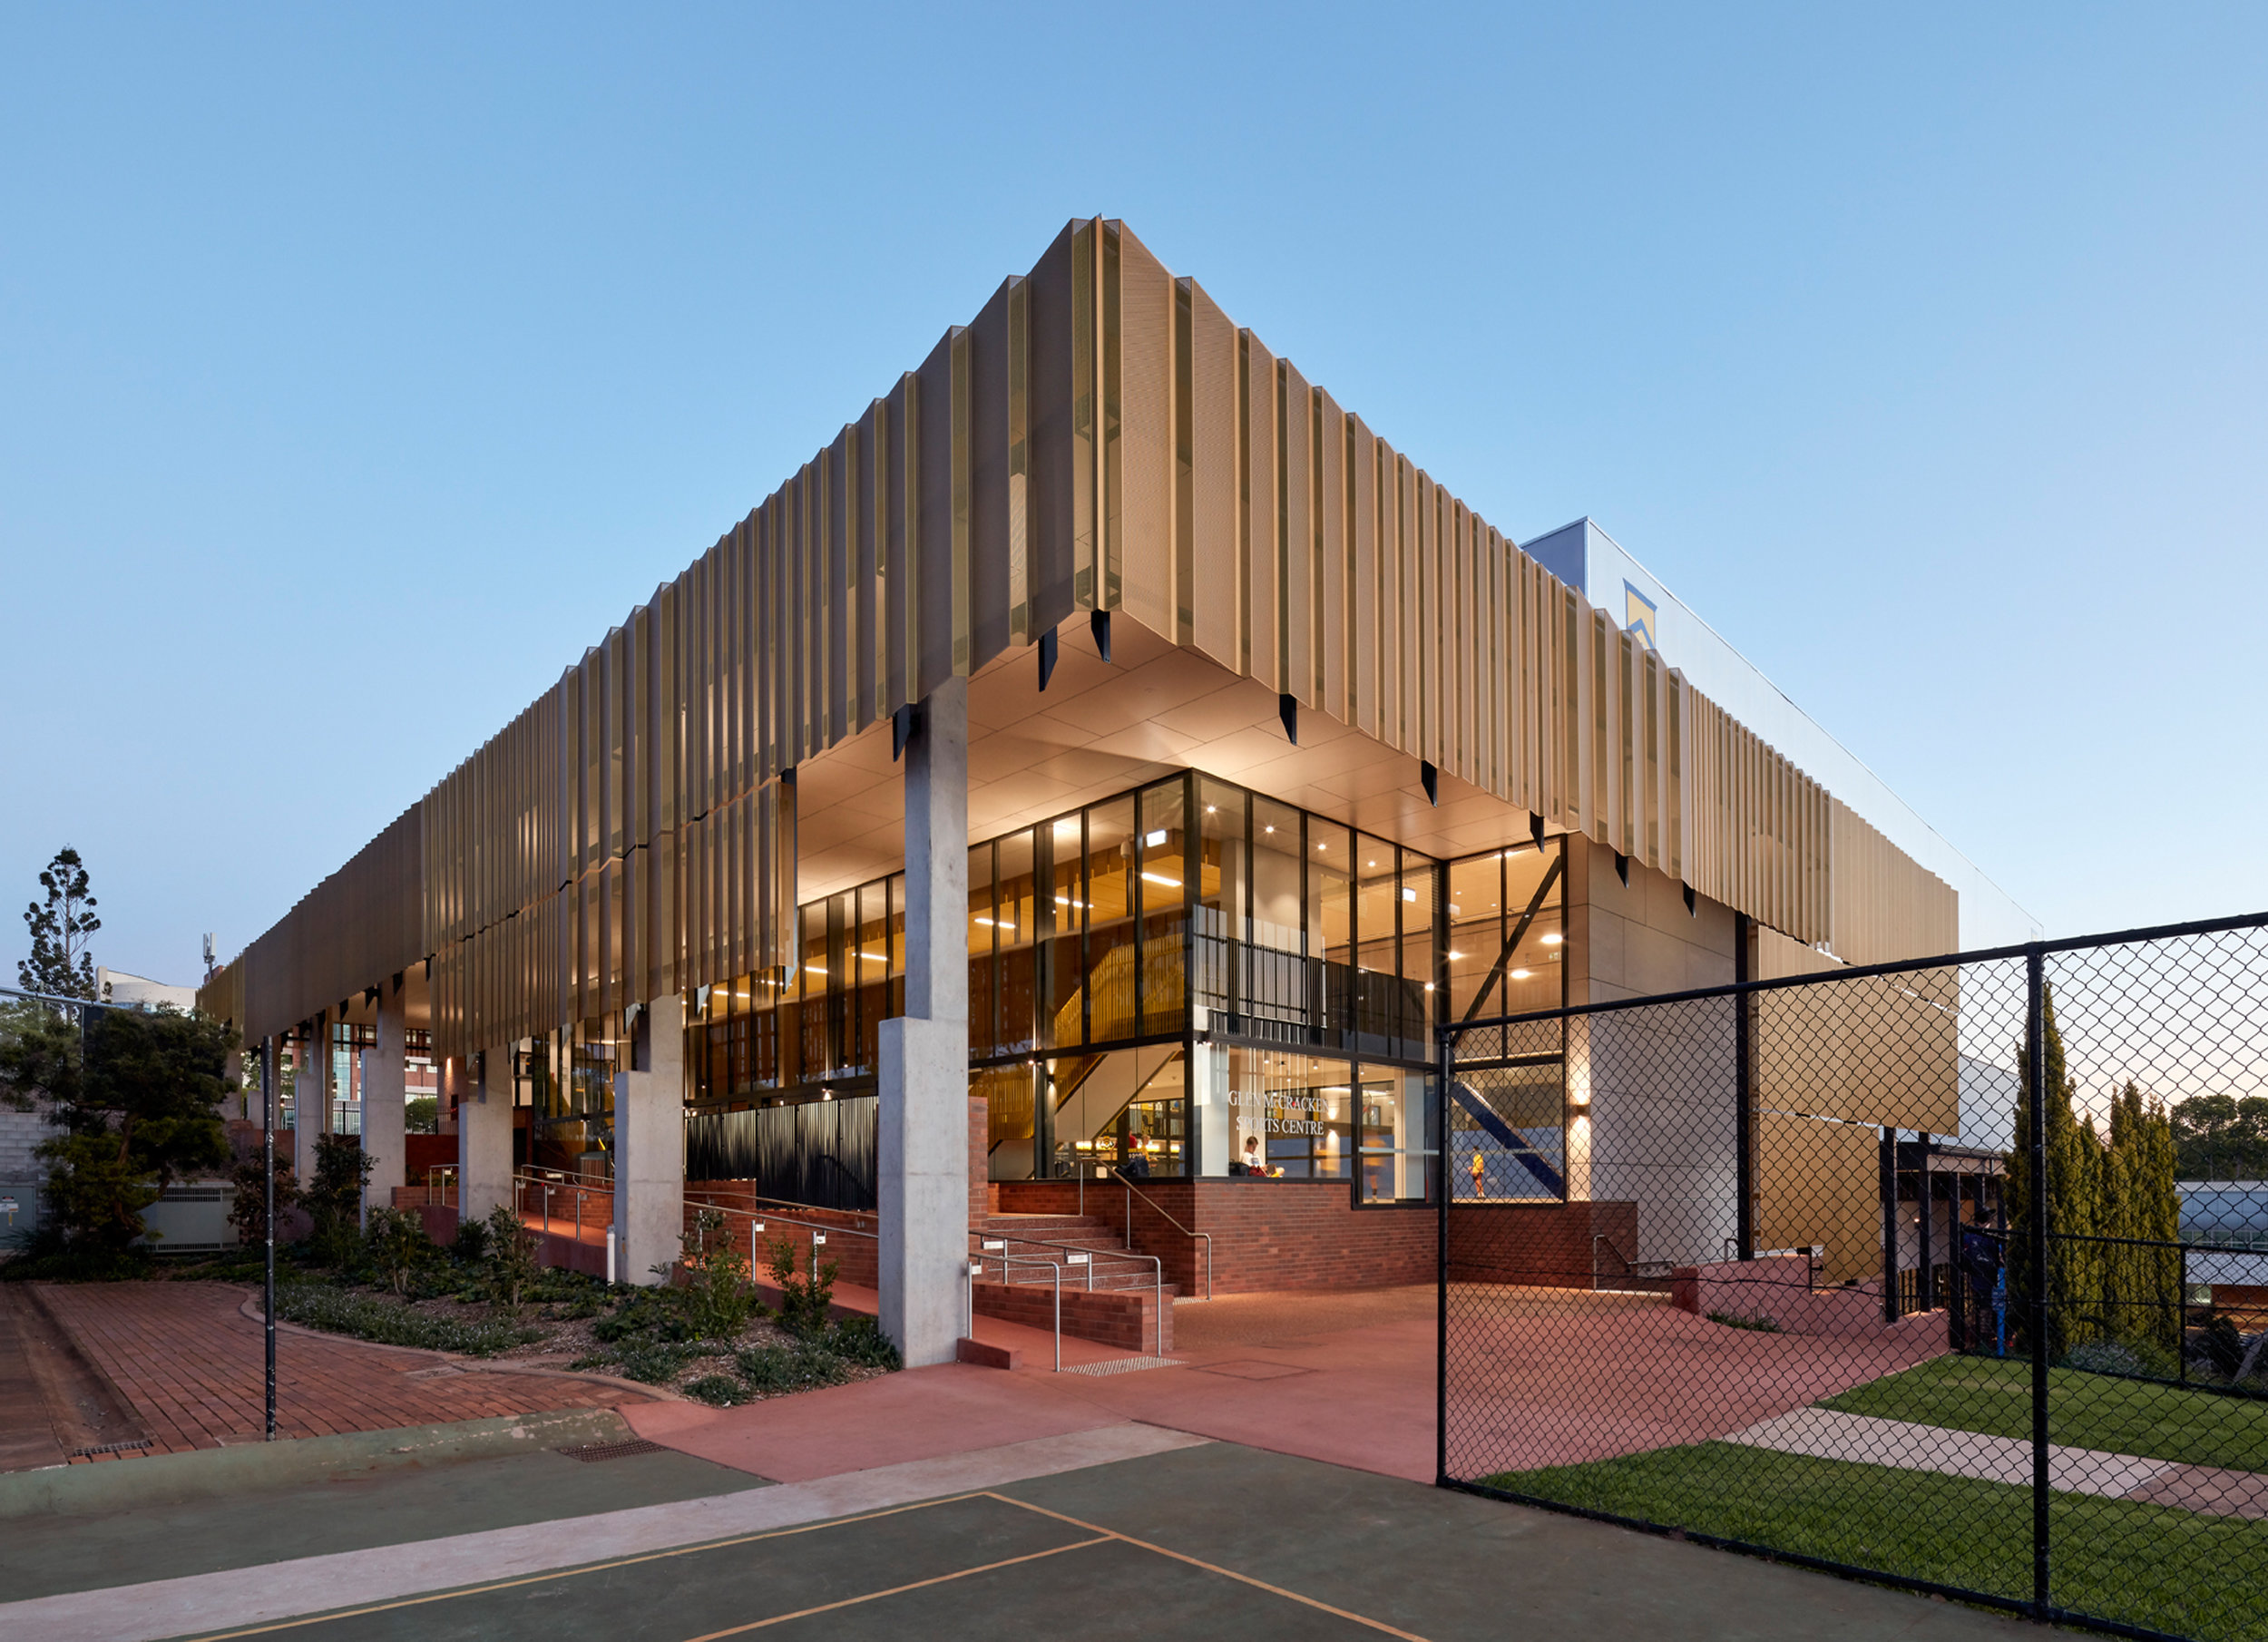 3002-educational_ToowoombaGrammarSchoolGymnasium_WilsonArch_CFJ_05.jpg